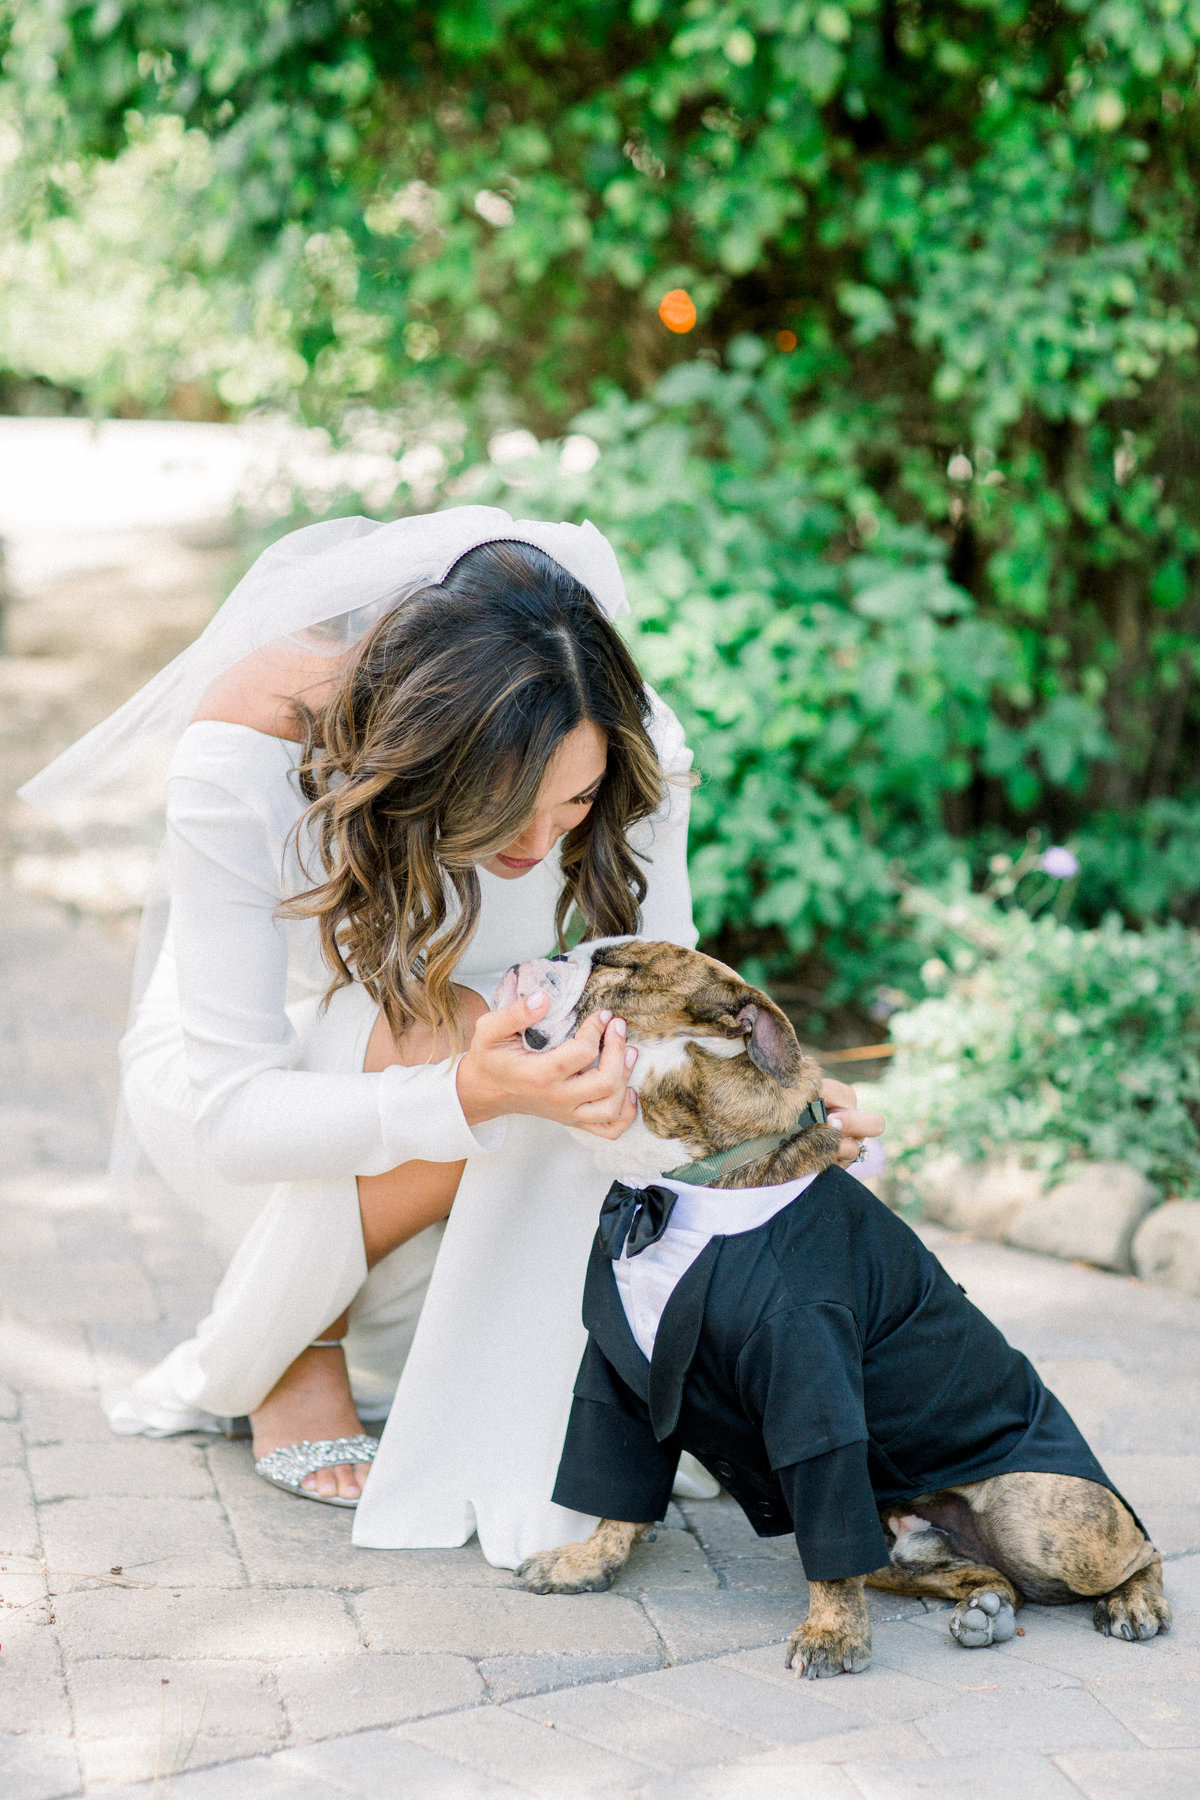 bride in long sleeved wedding dress with ring dog in tuxedo at Maravilla Gardens wedding